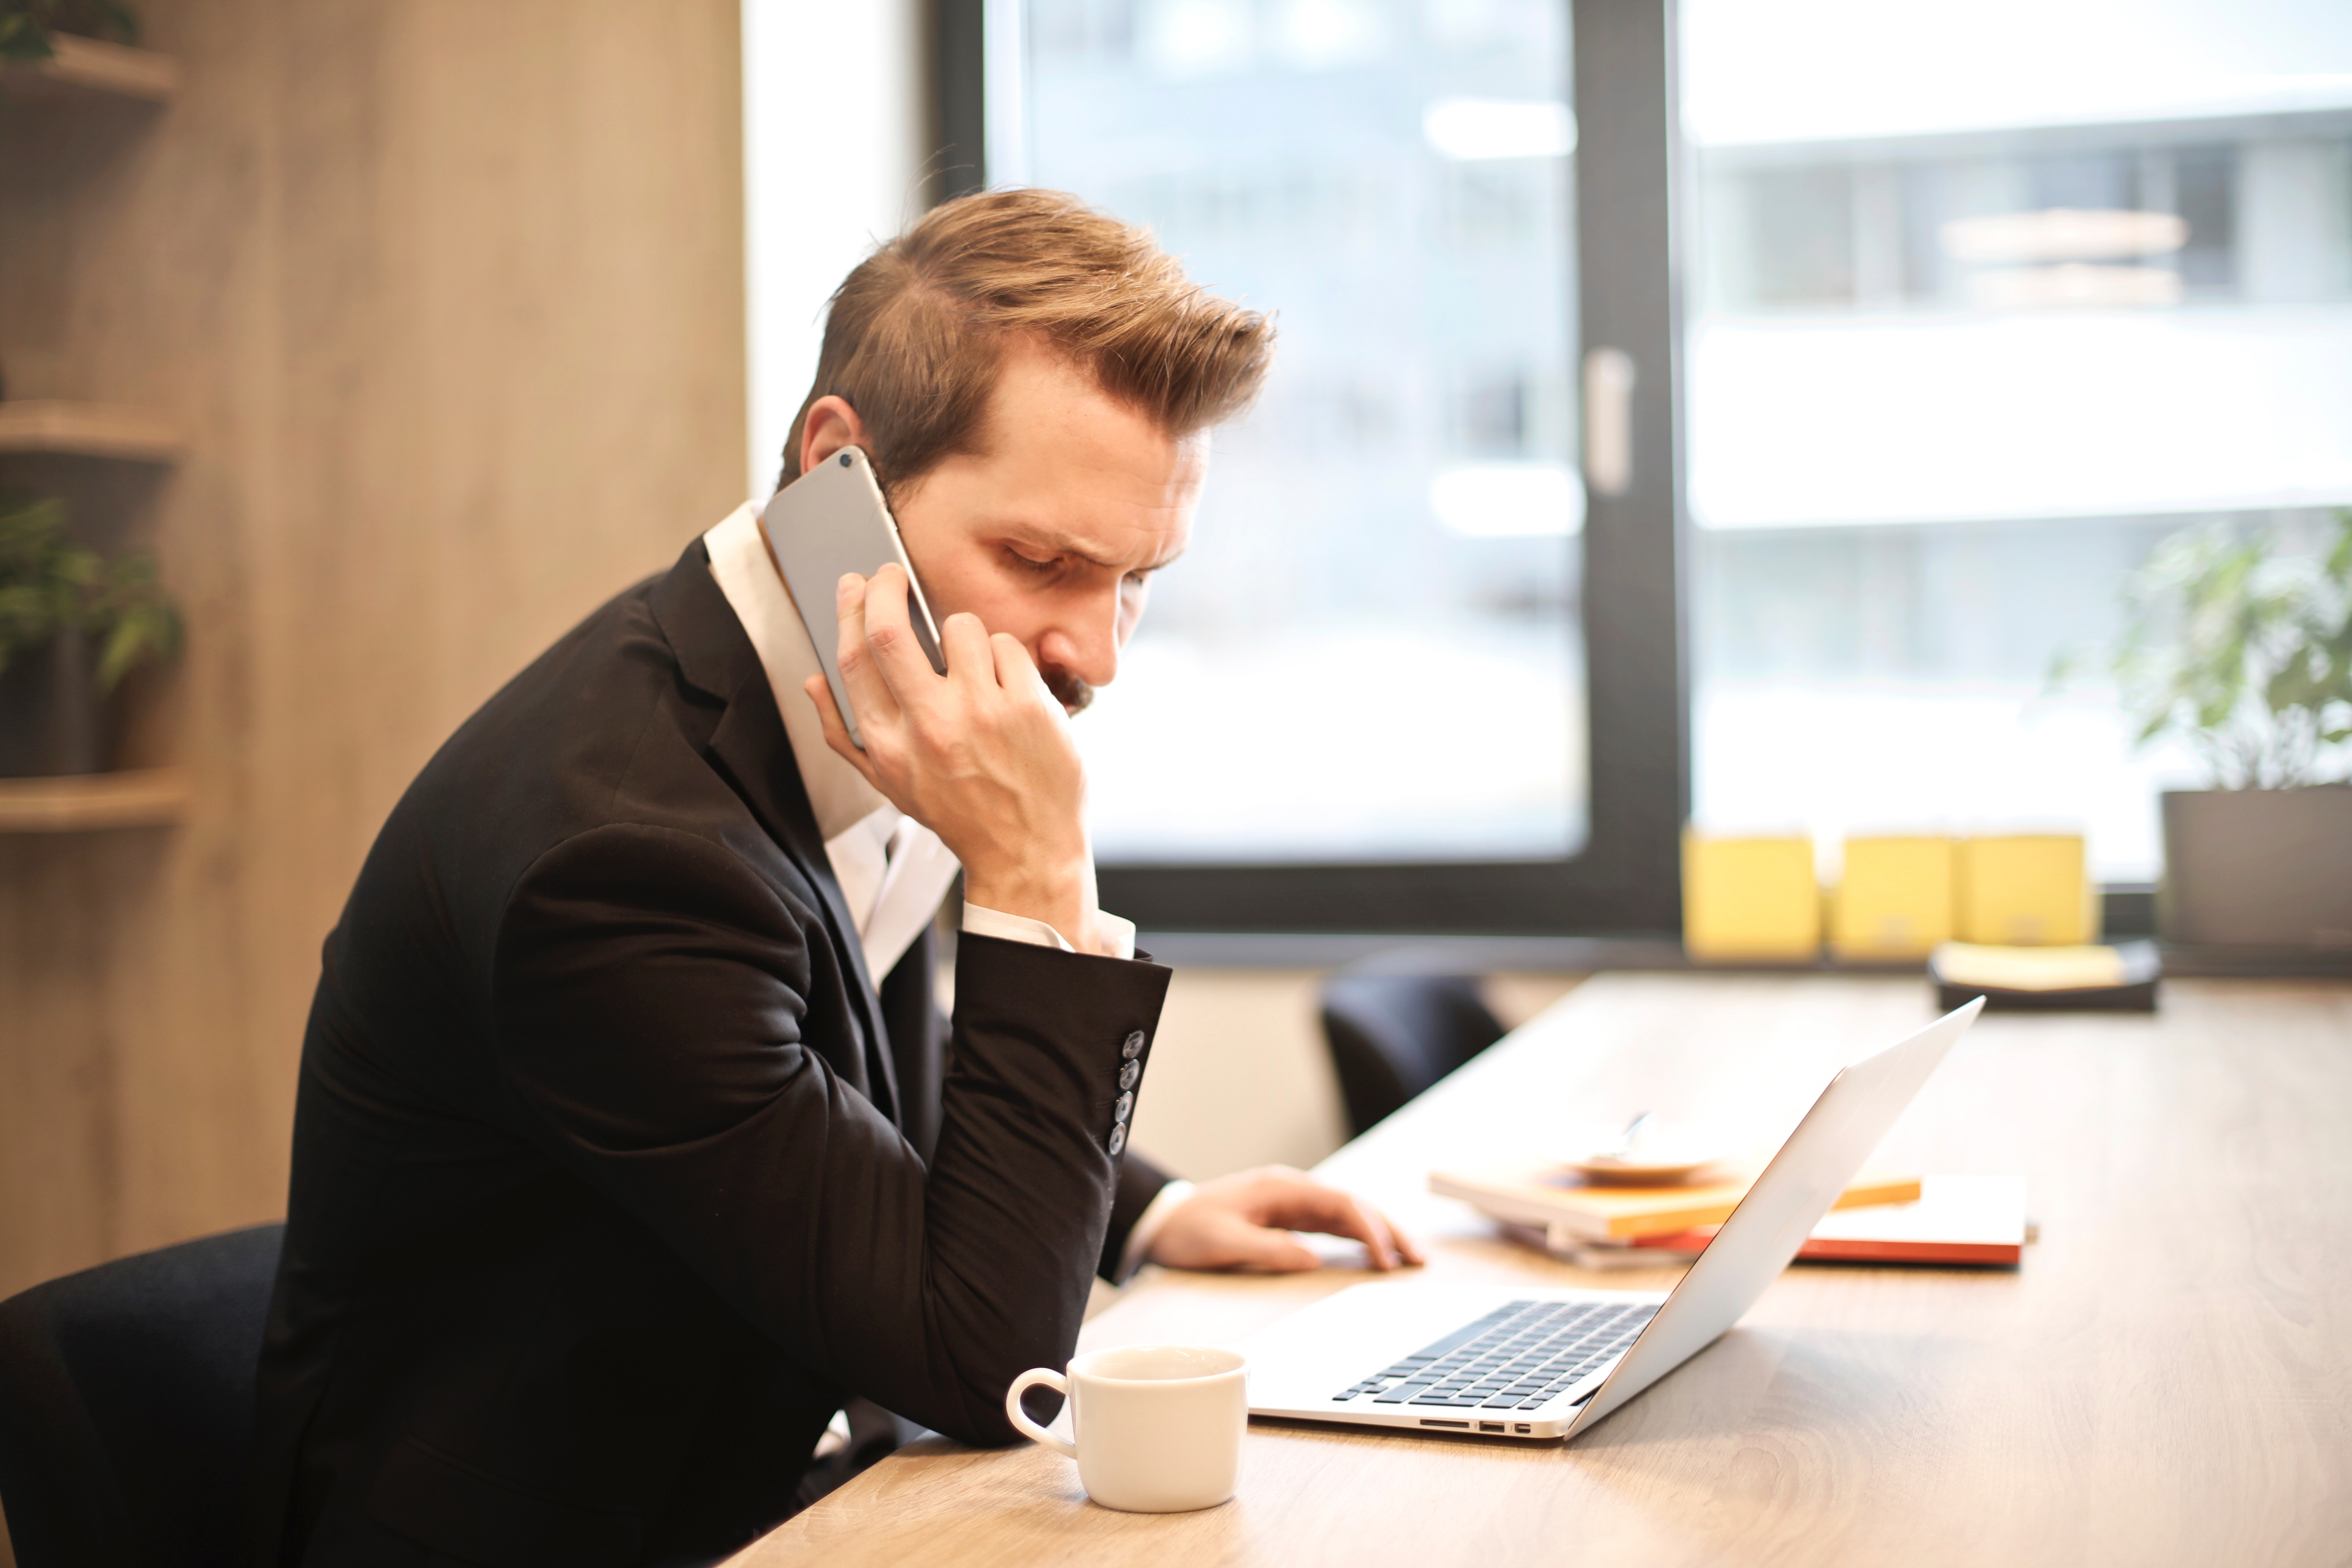 Man having a phone call in front of a laptop